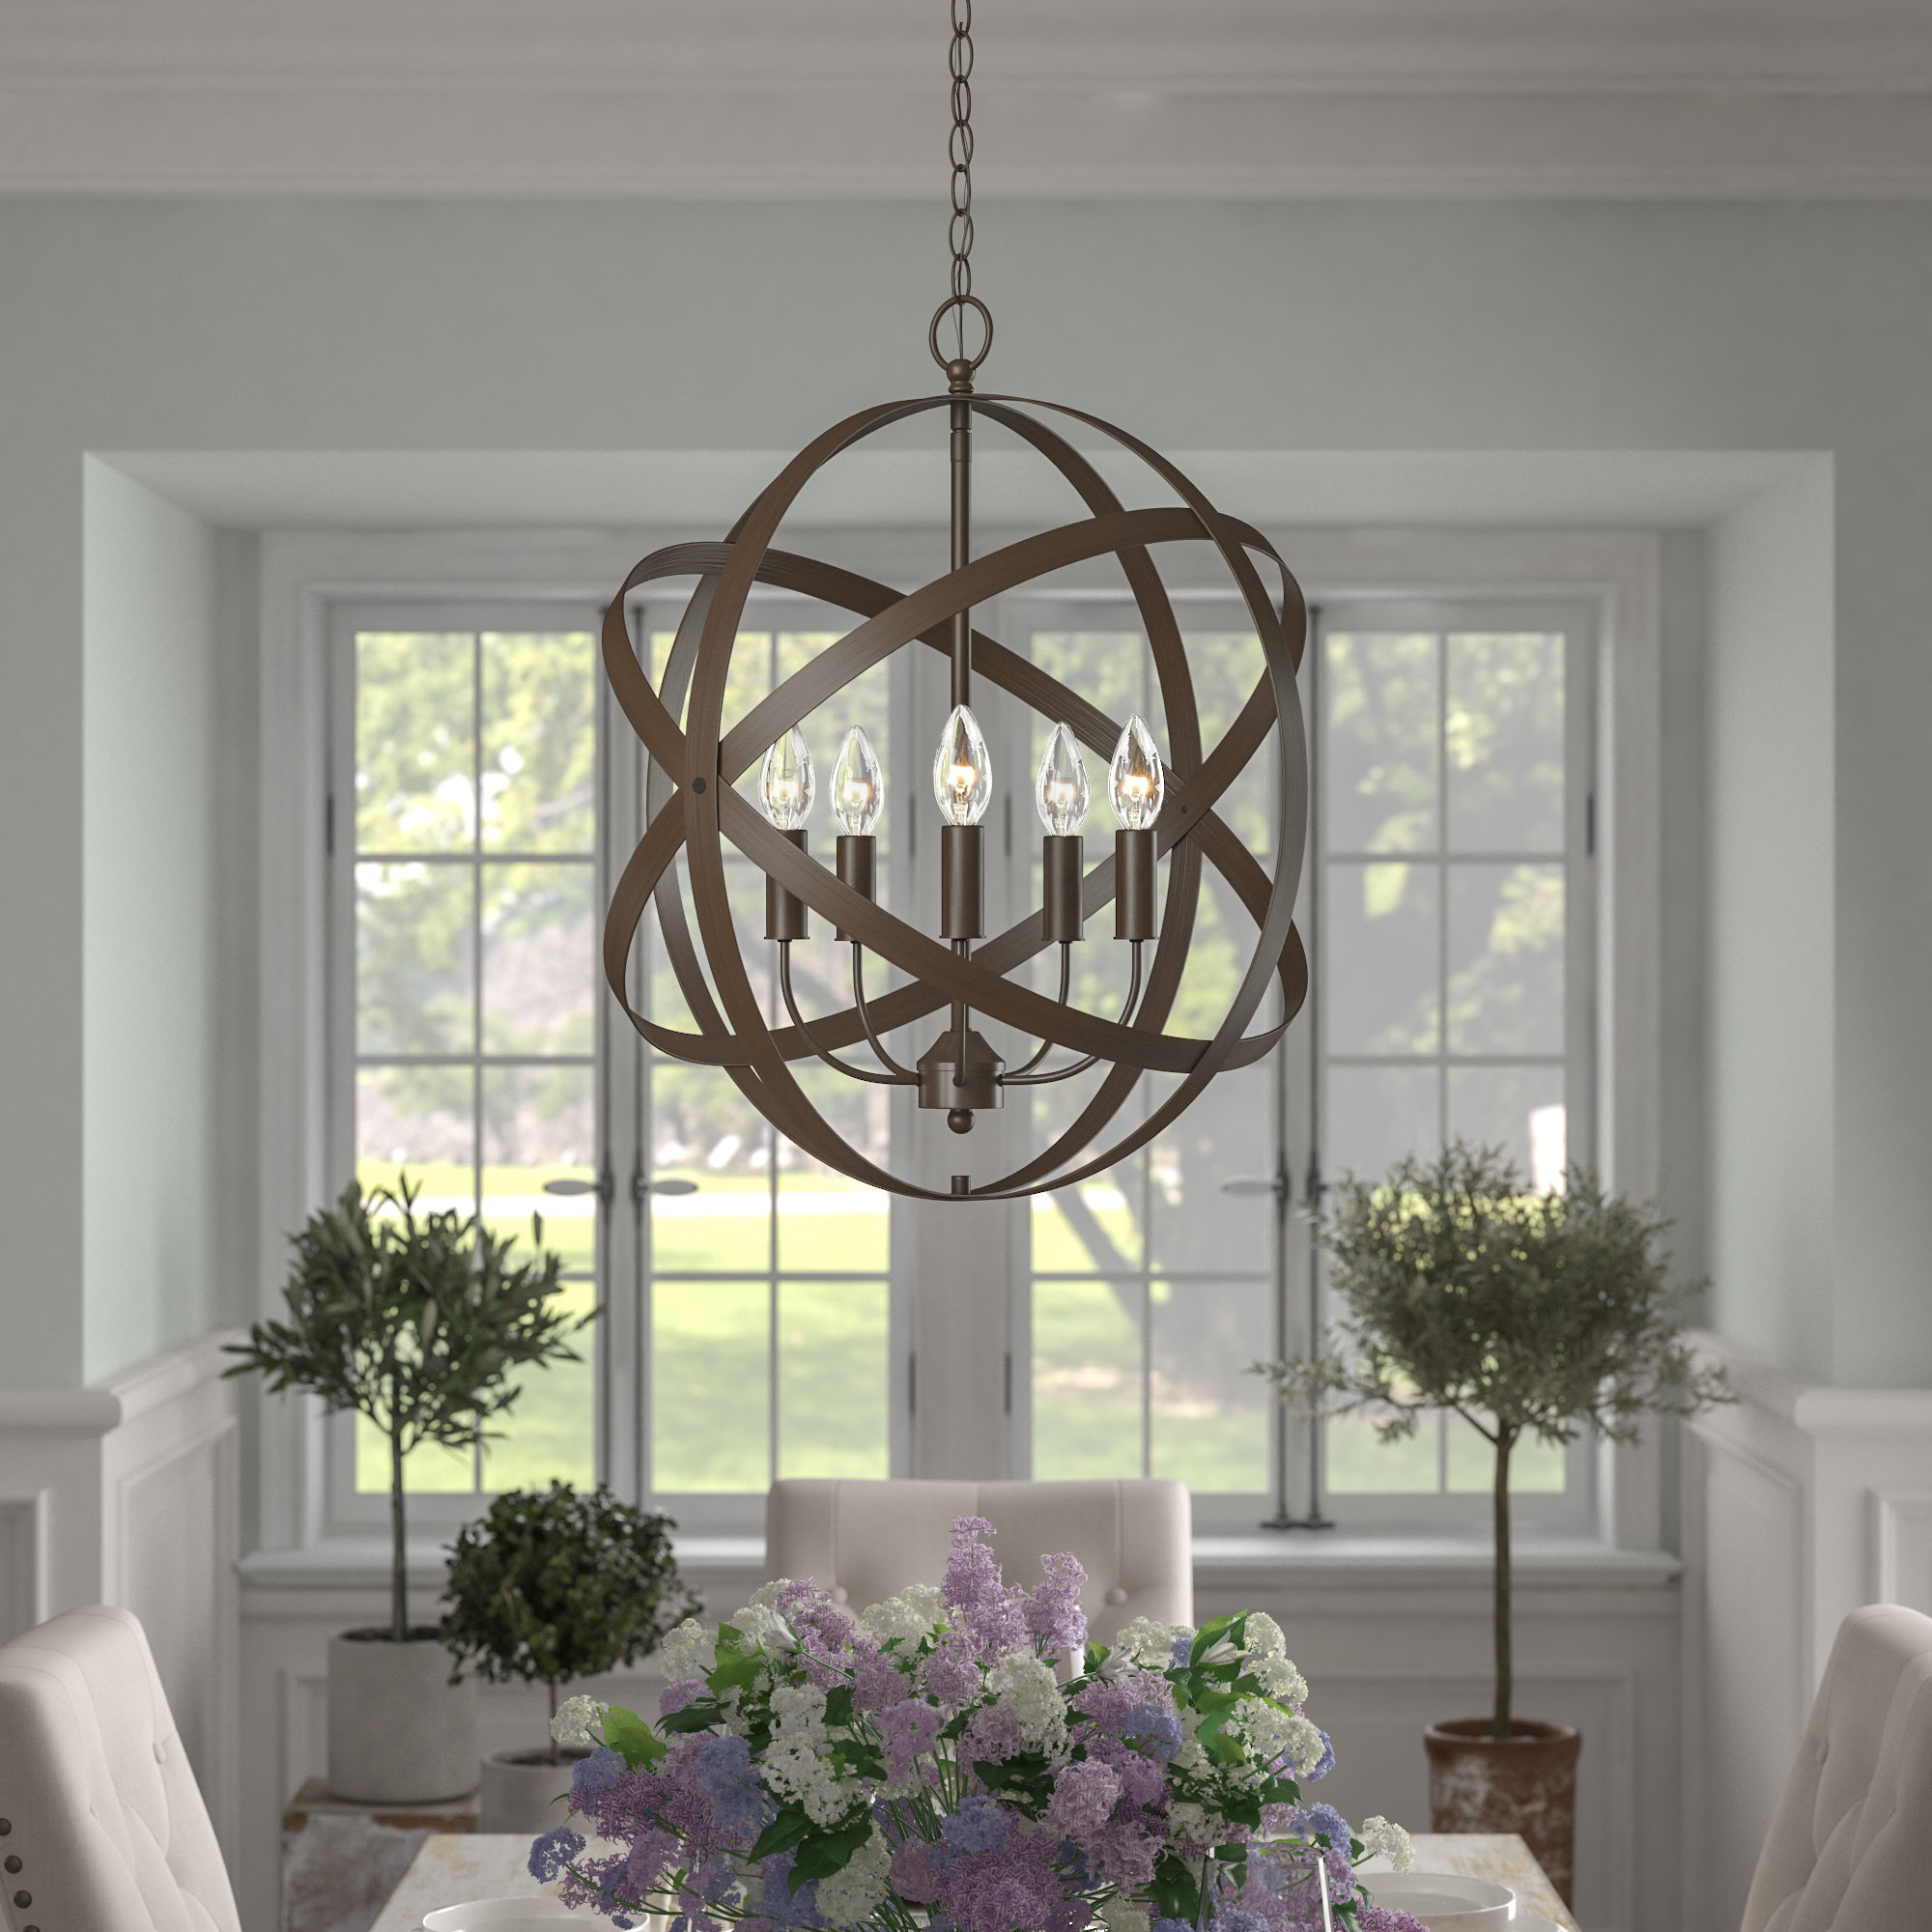 Della 5 Light Globe Chandelier For Popular Waldron 5 Light Globe Chandeliers (Gallery 6 of 25)